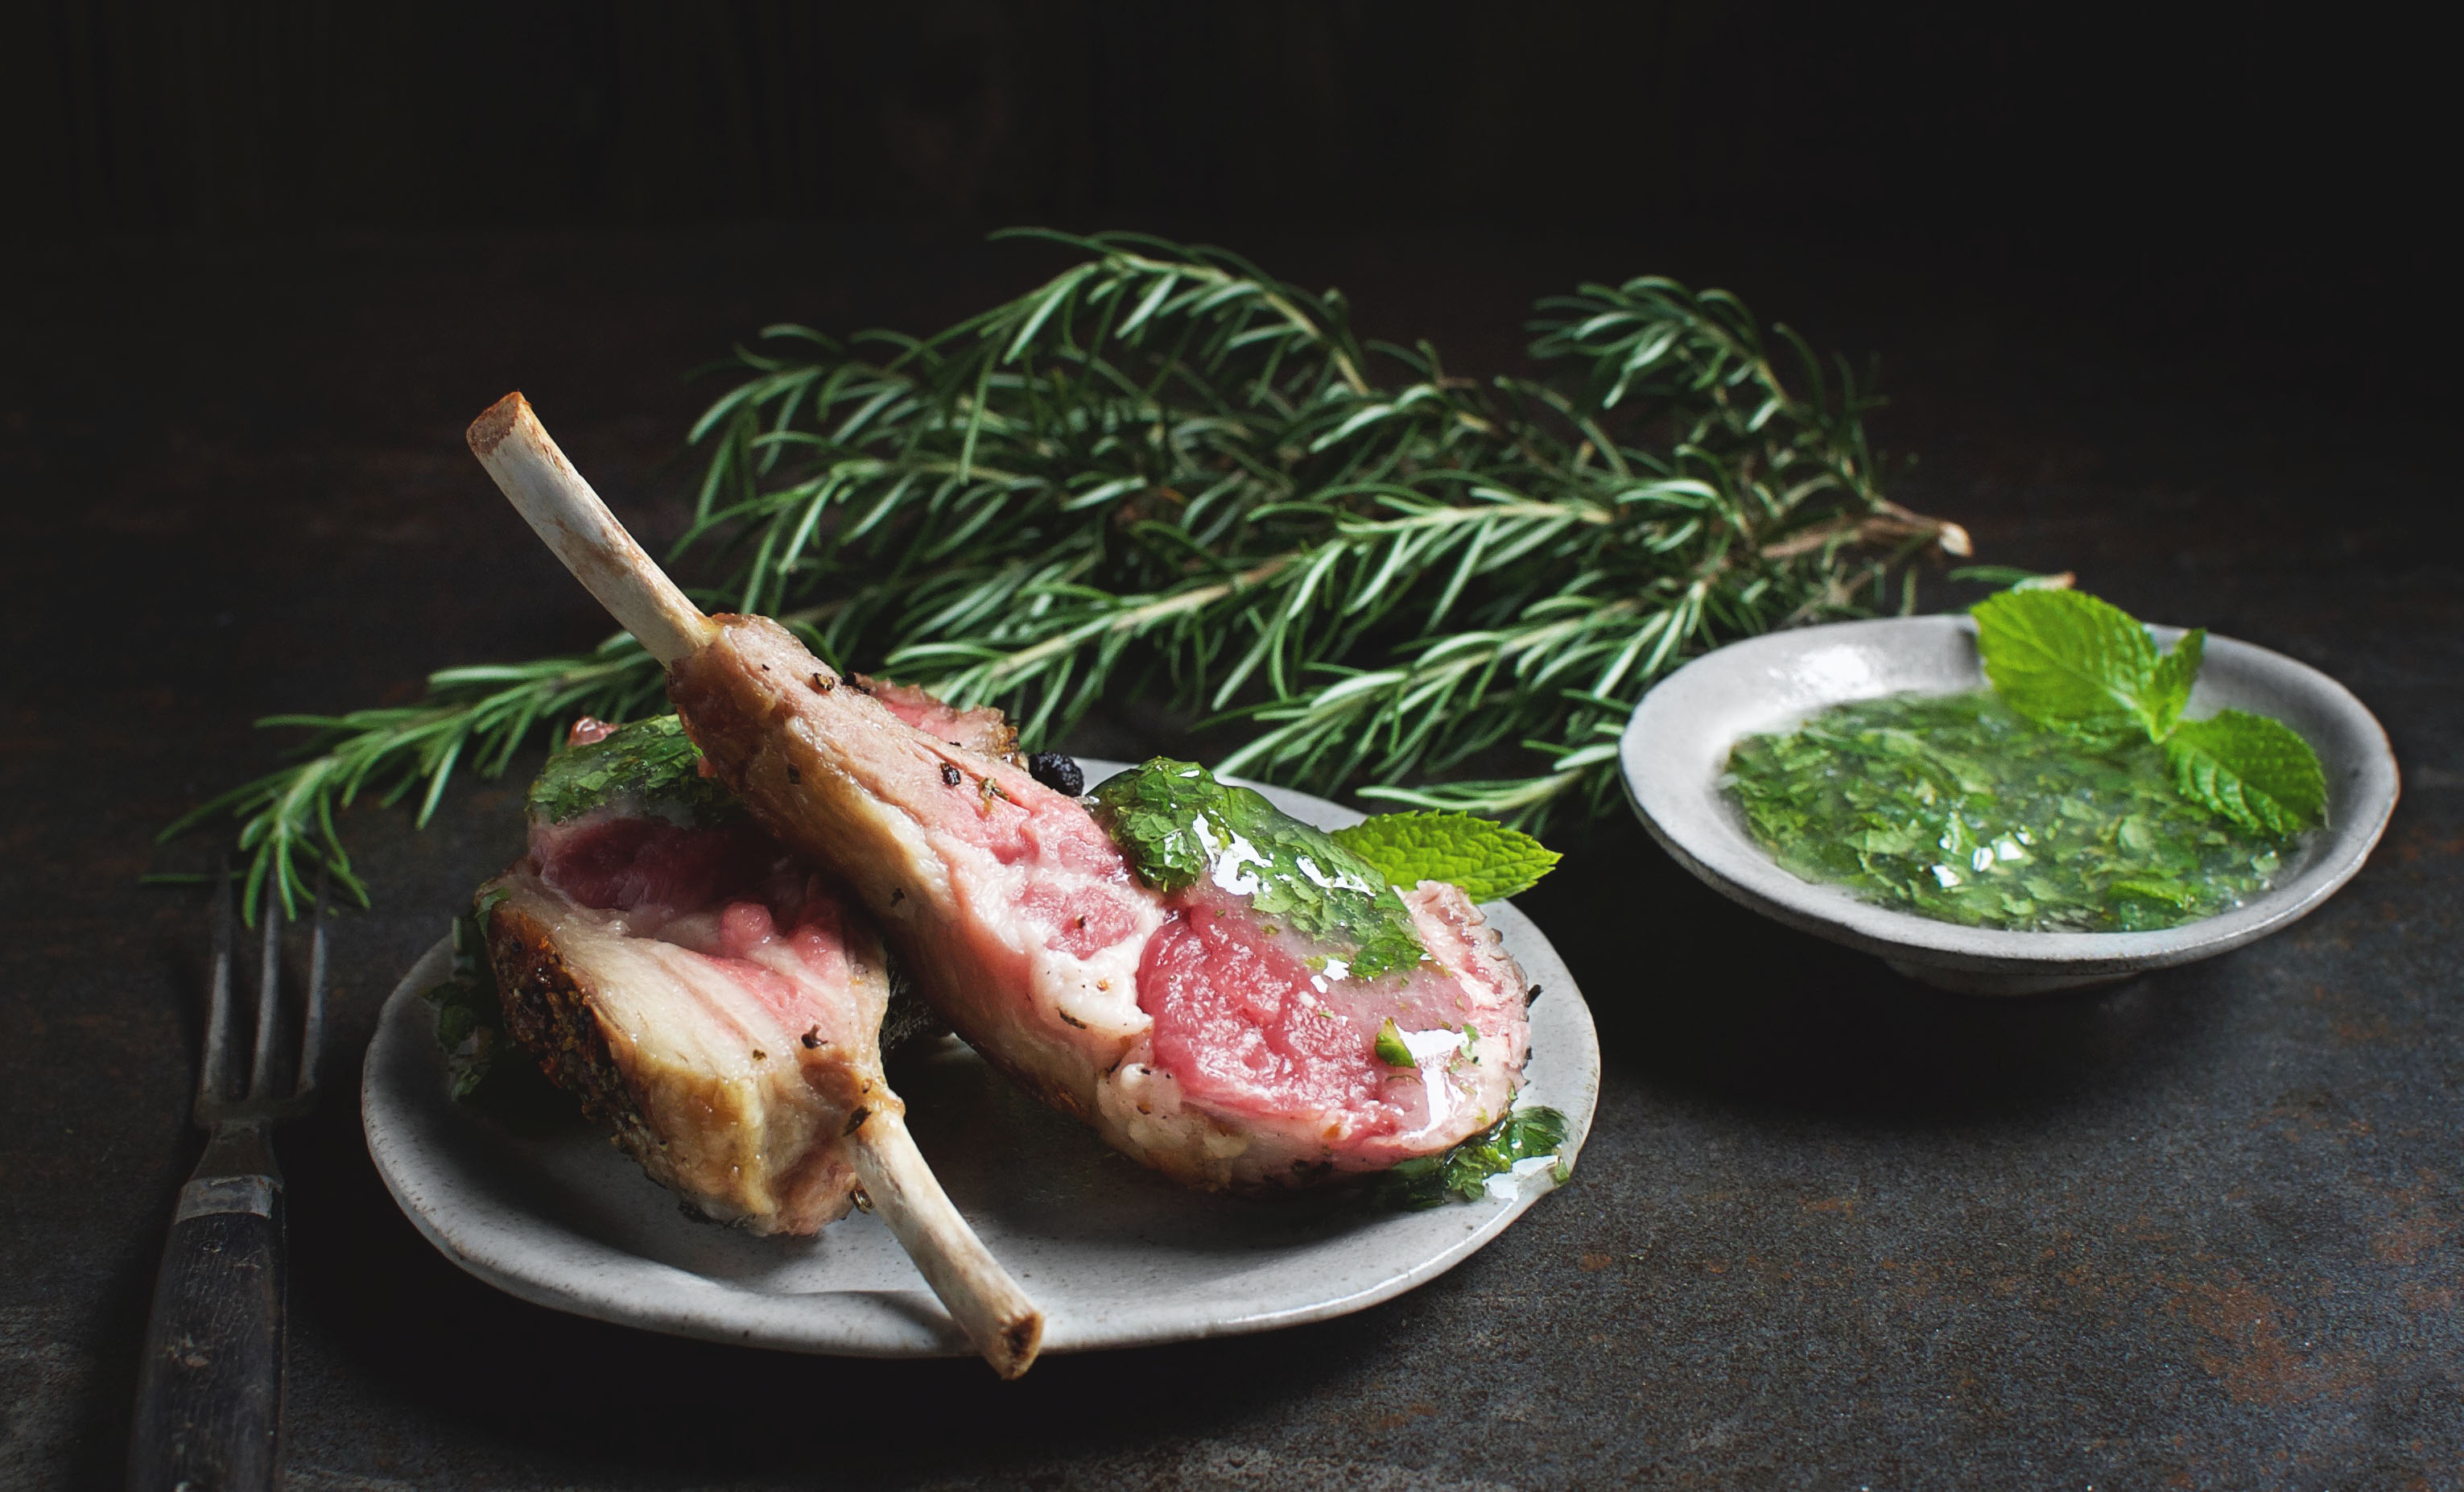 Garlic Rosemary Rack of Lamb with Low-Carb Mint Glaze